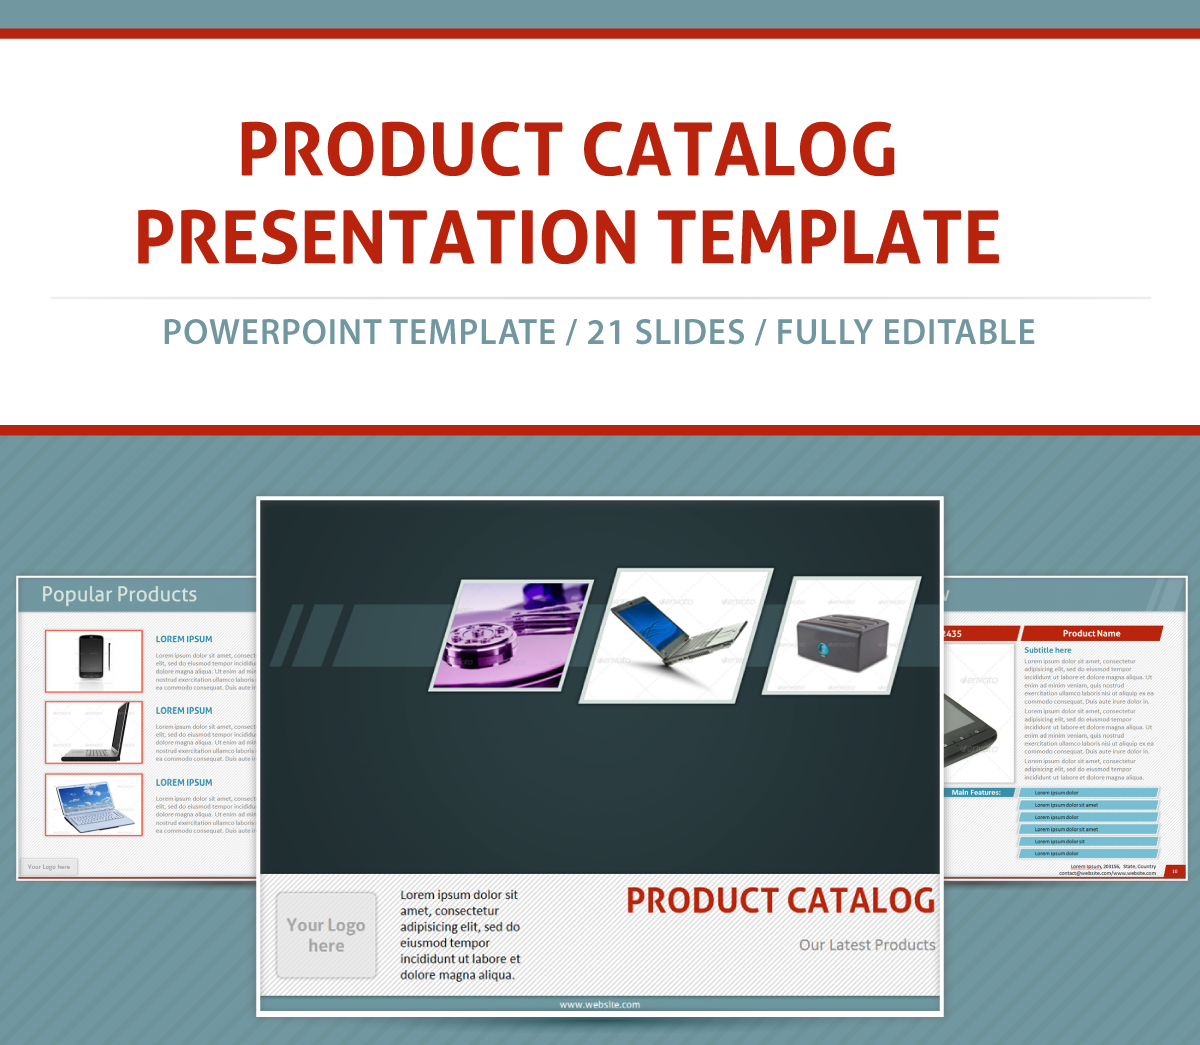 Product Catalog Powerpoint Presentation Template